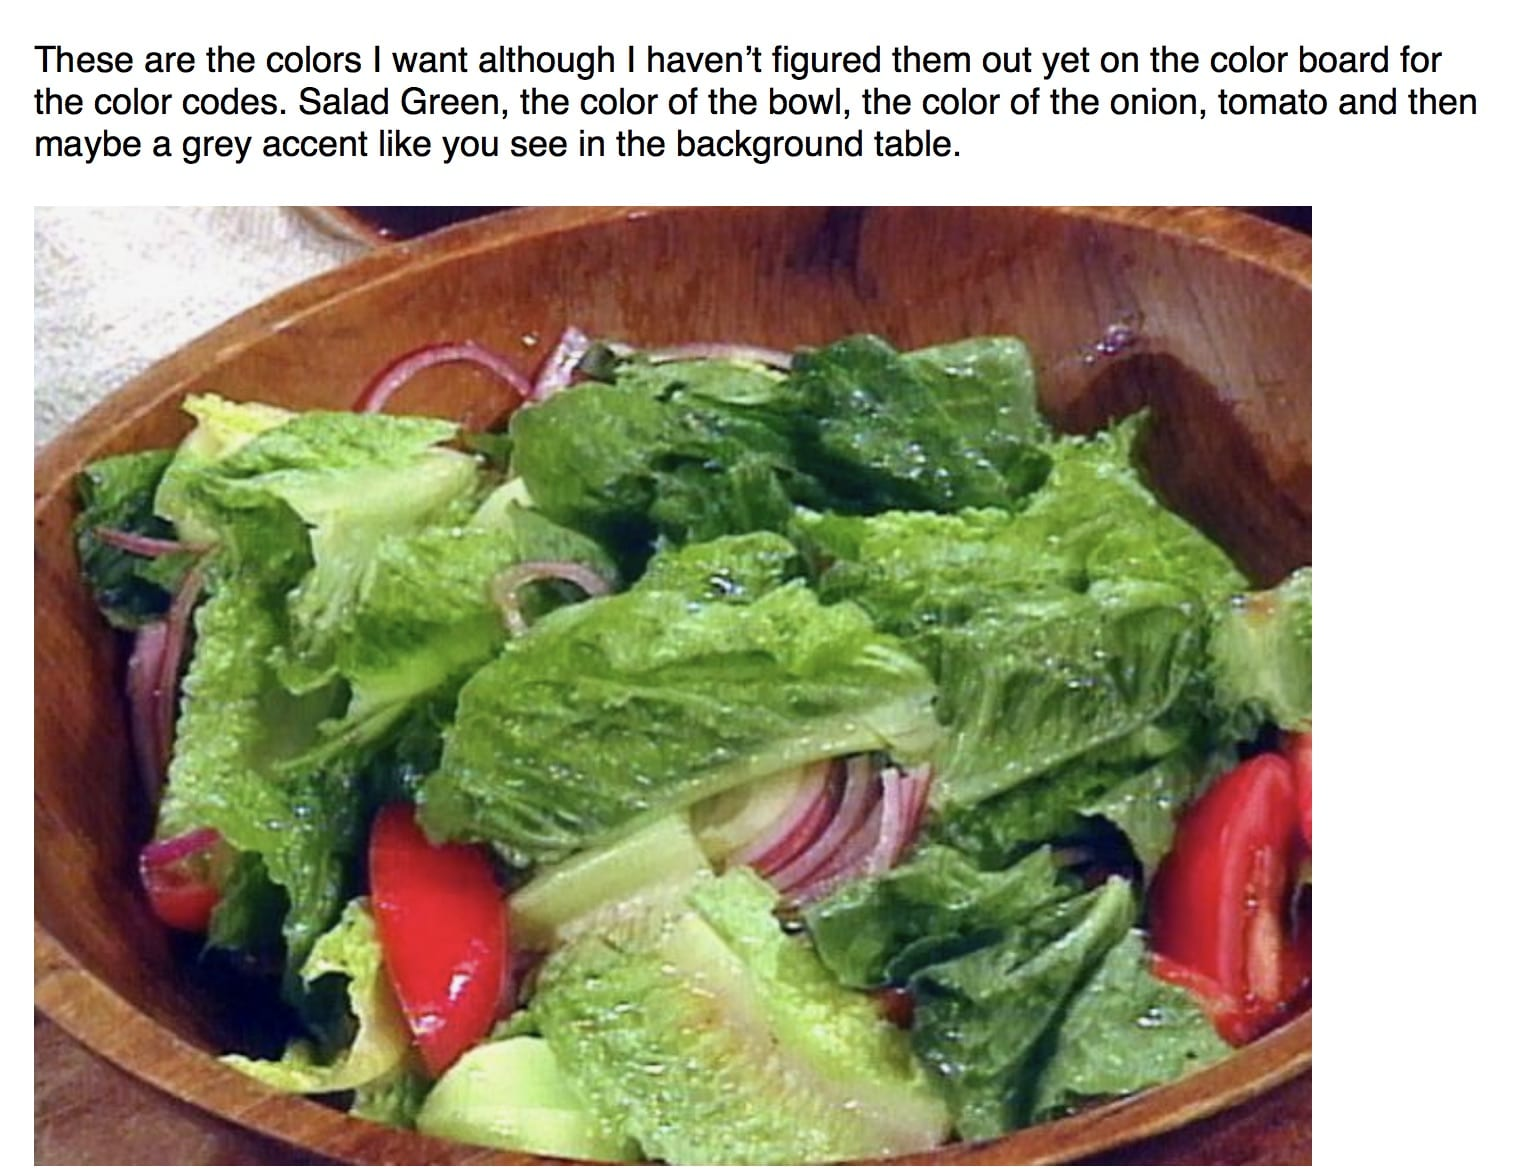 Lori Ballen, Keto Coach sample of an email with a salad and a request to build a website matching the colors in the photo